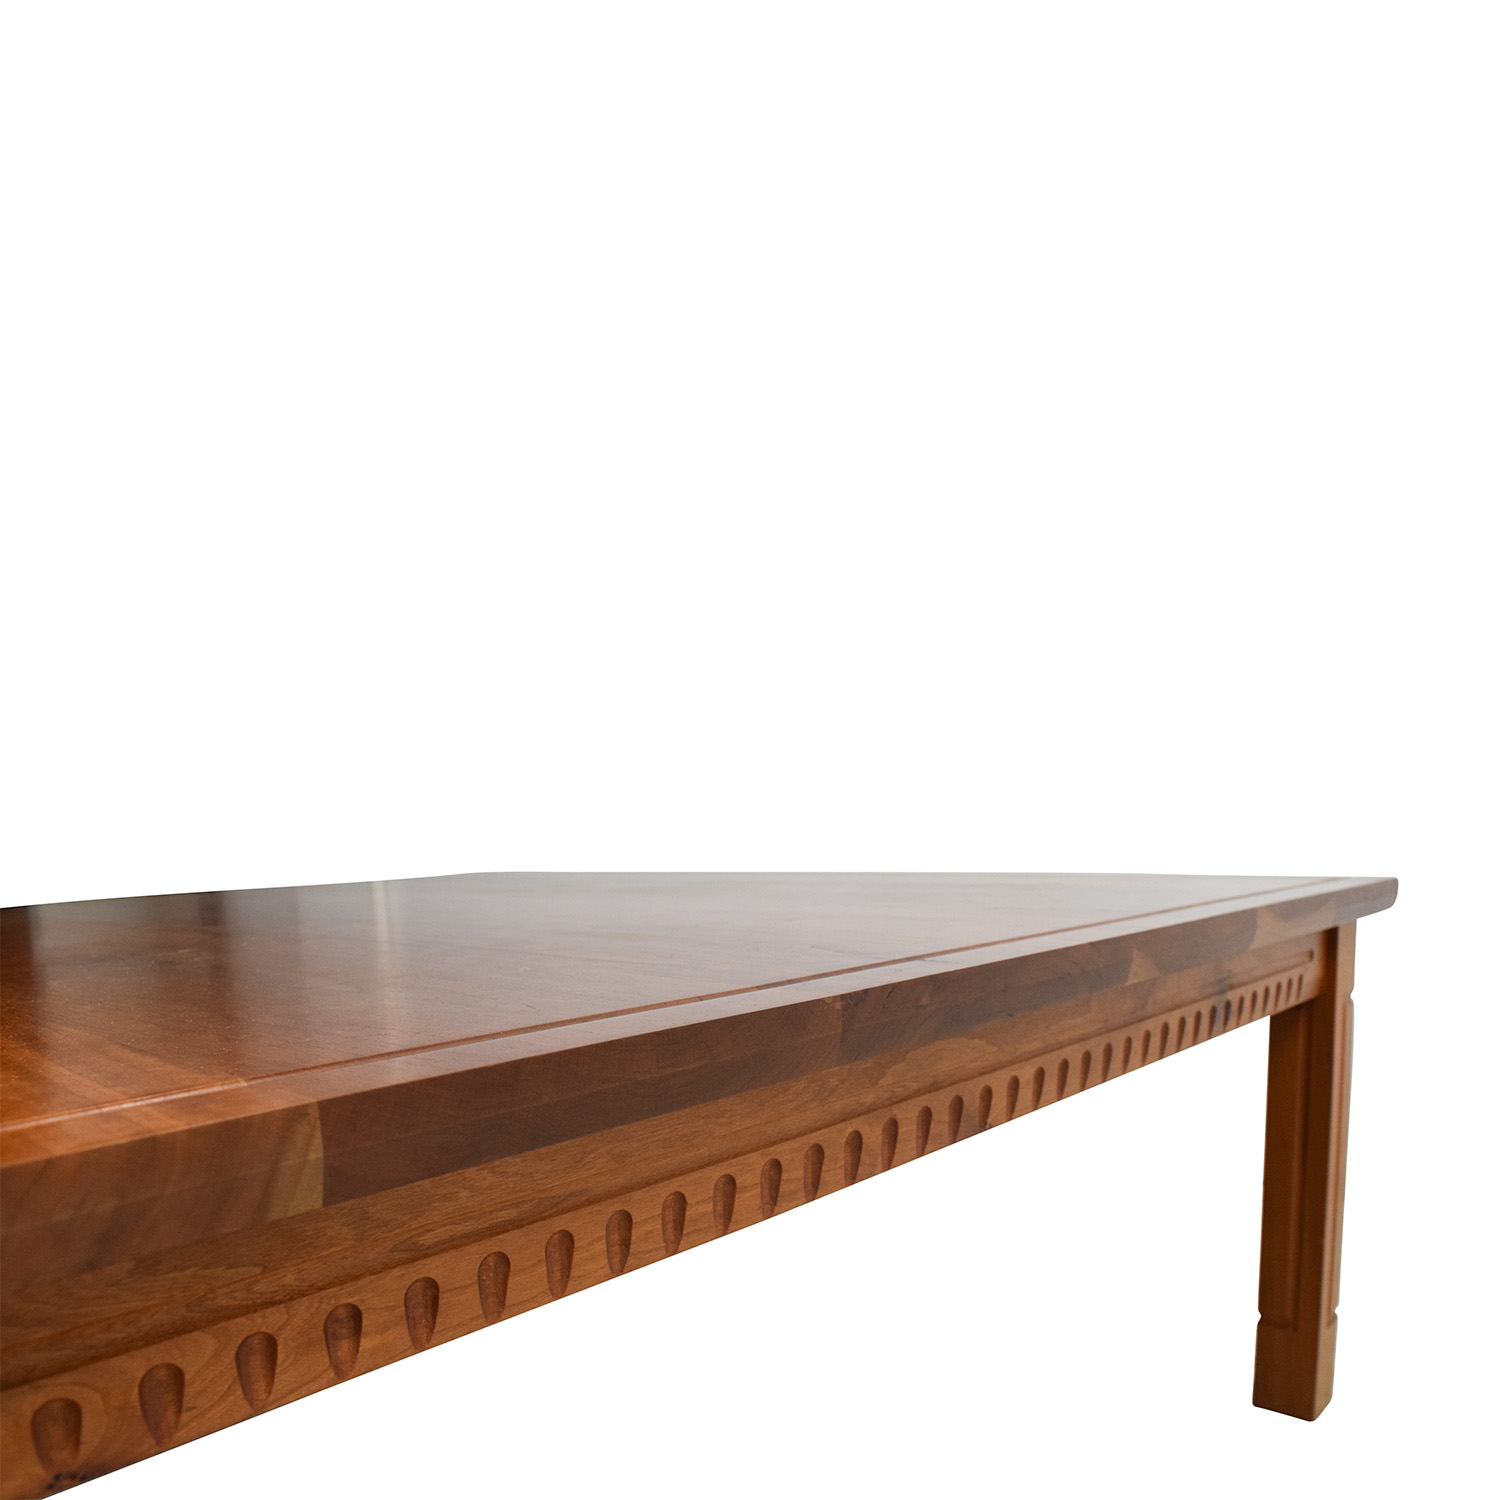 81 off hill country woodworks handcrafted custom wood coffee table tables Handcrafted coffee table